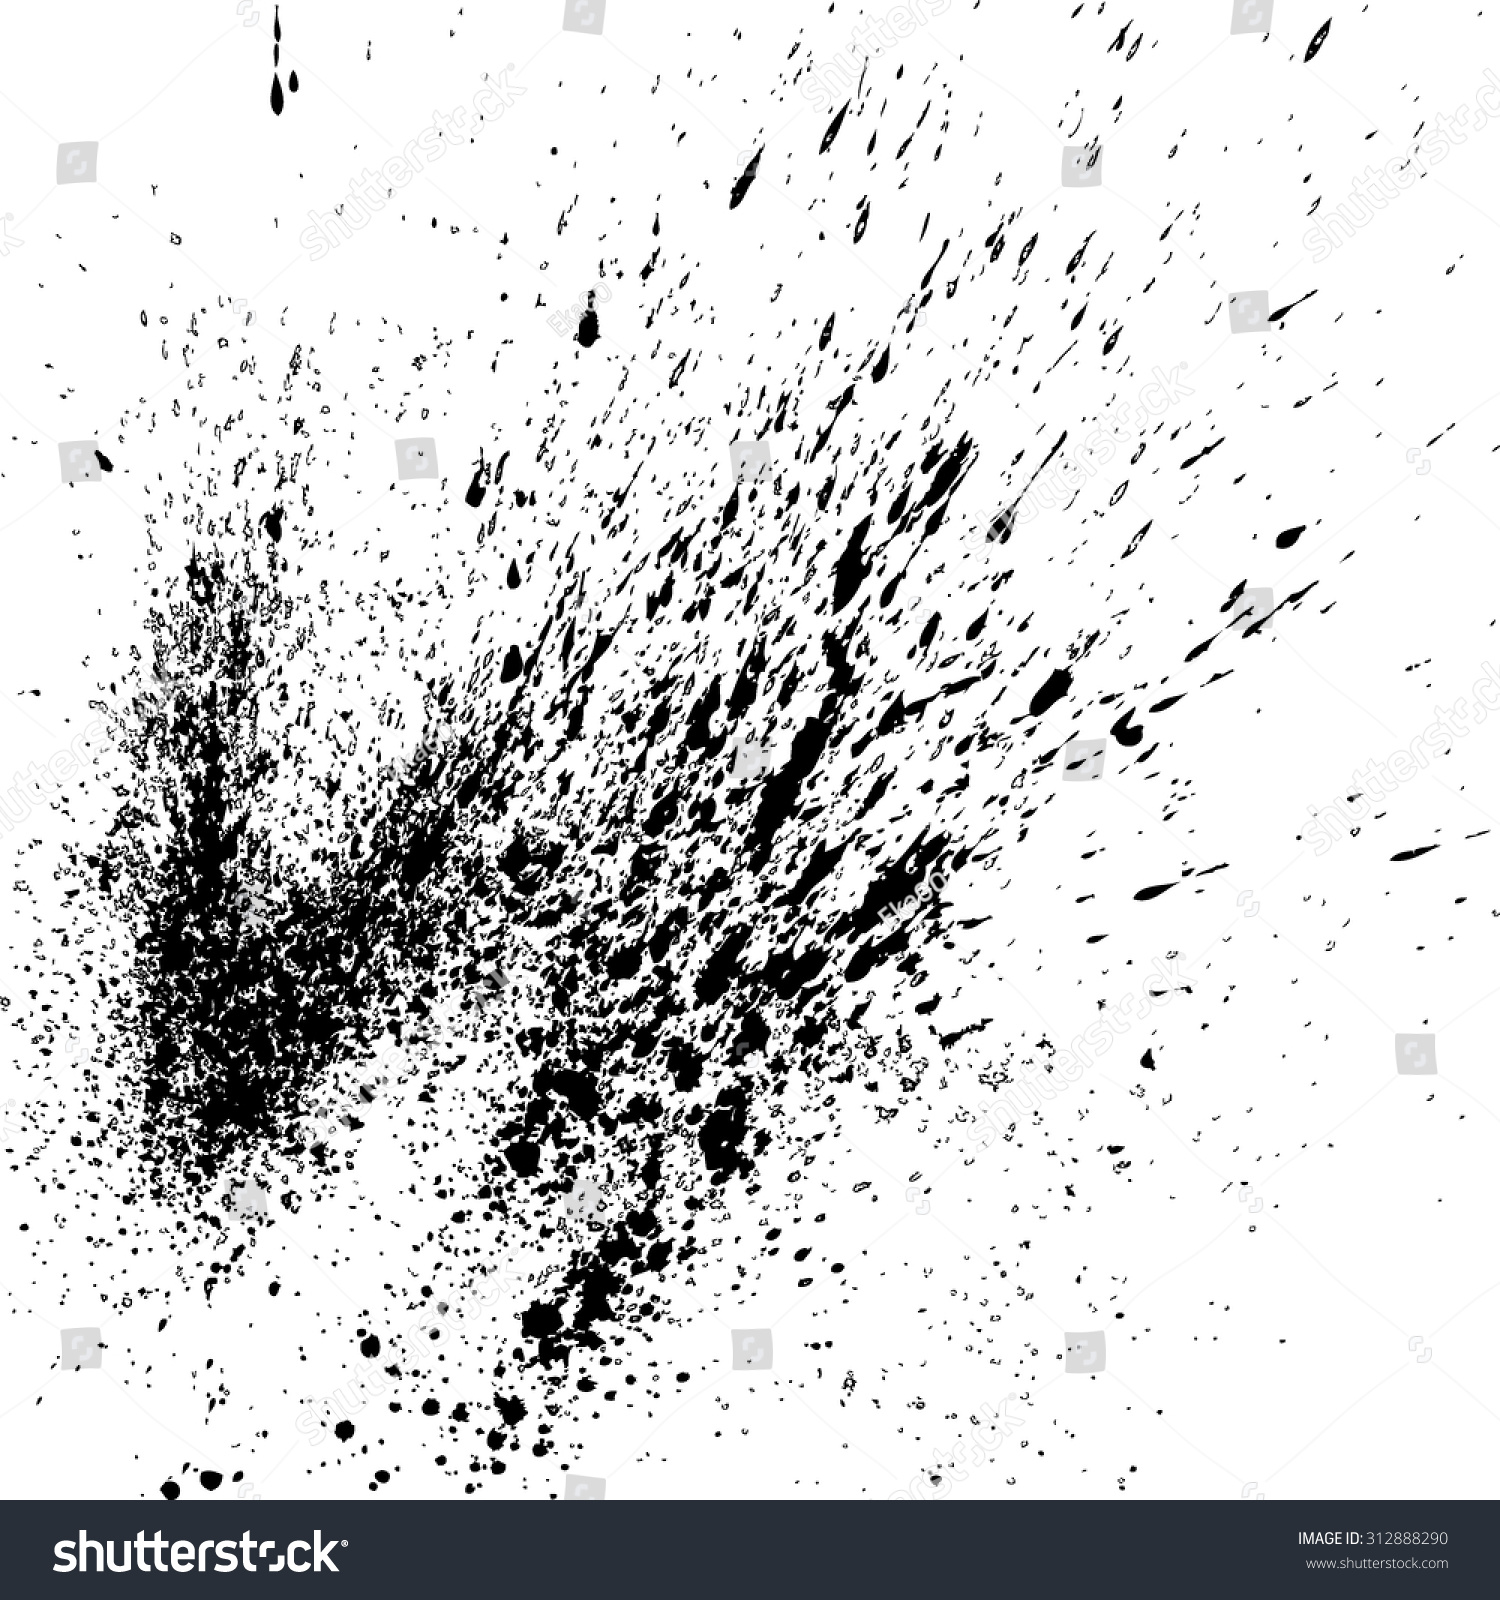 Cracked Dirt Grunge Texture Texture Create Stock Vector (Royalty Free)  312888290